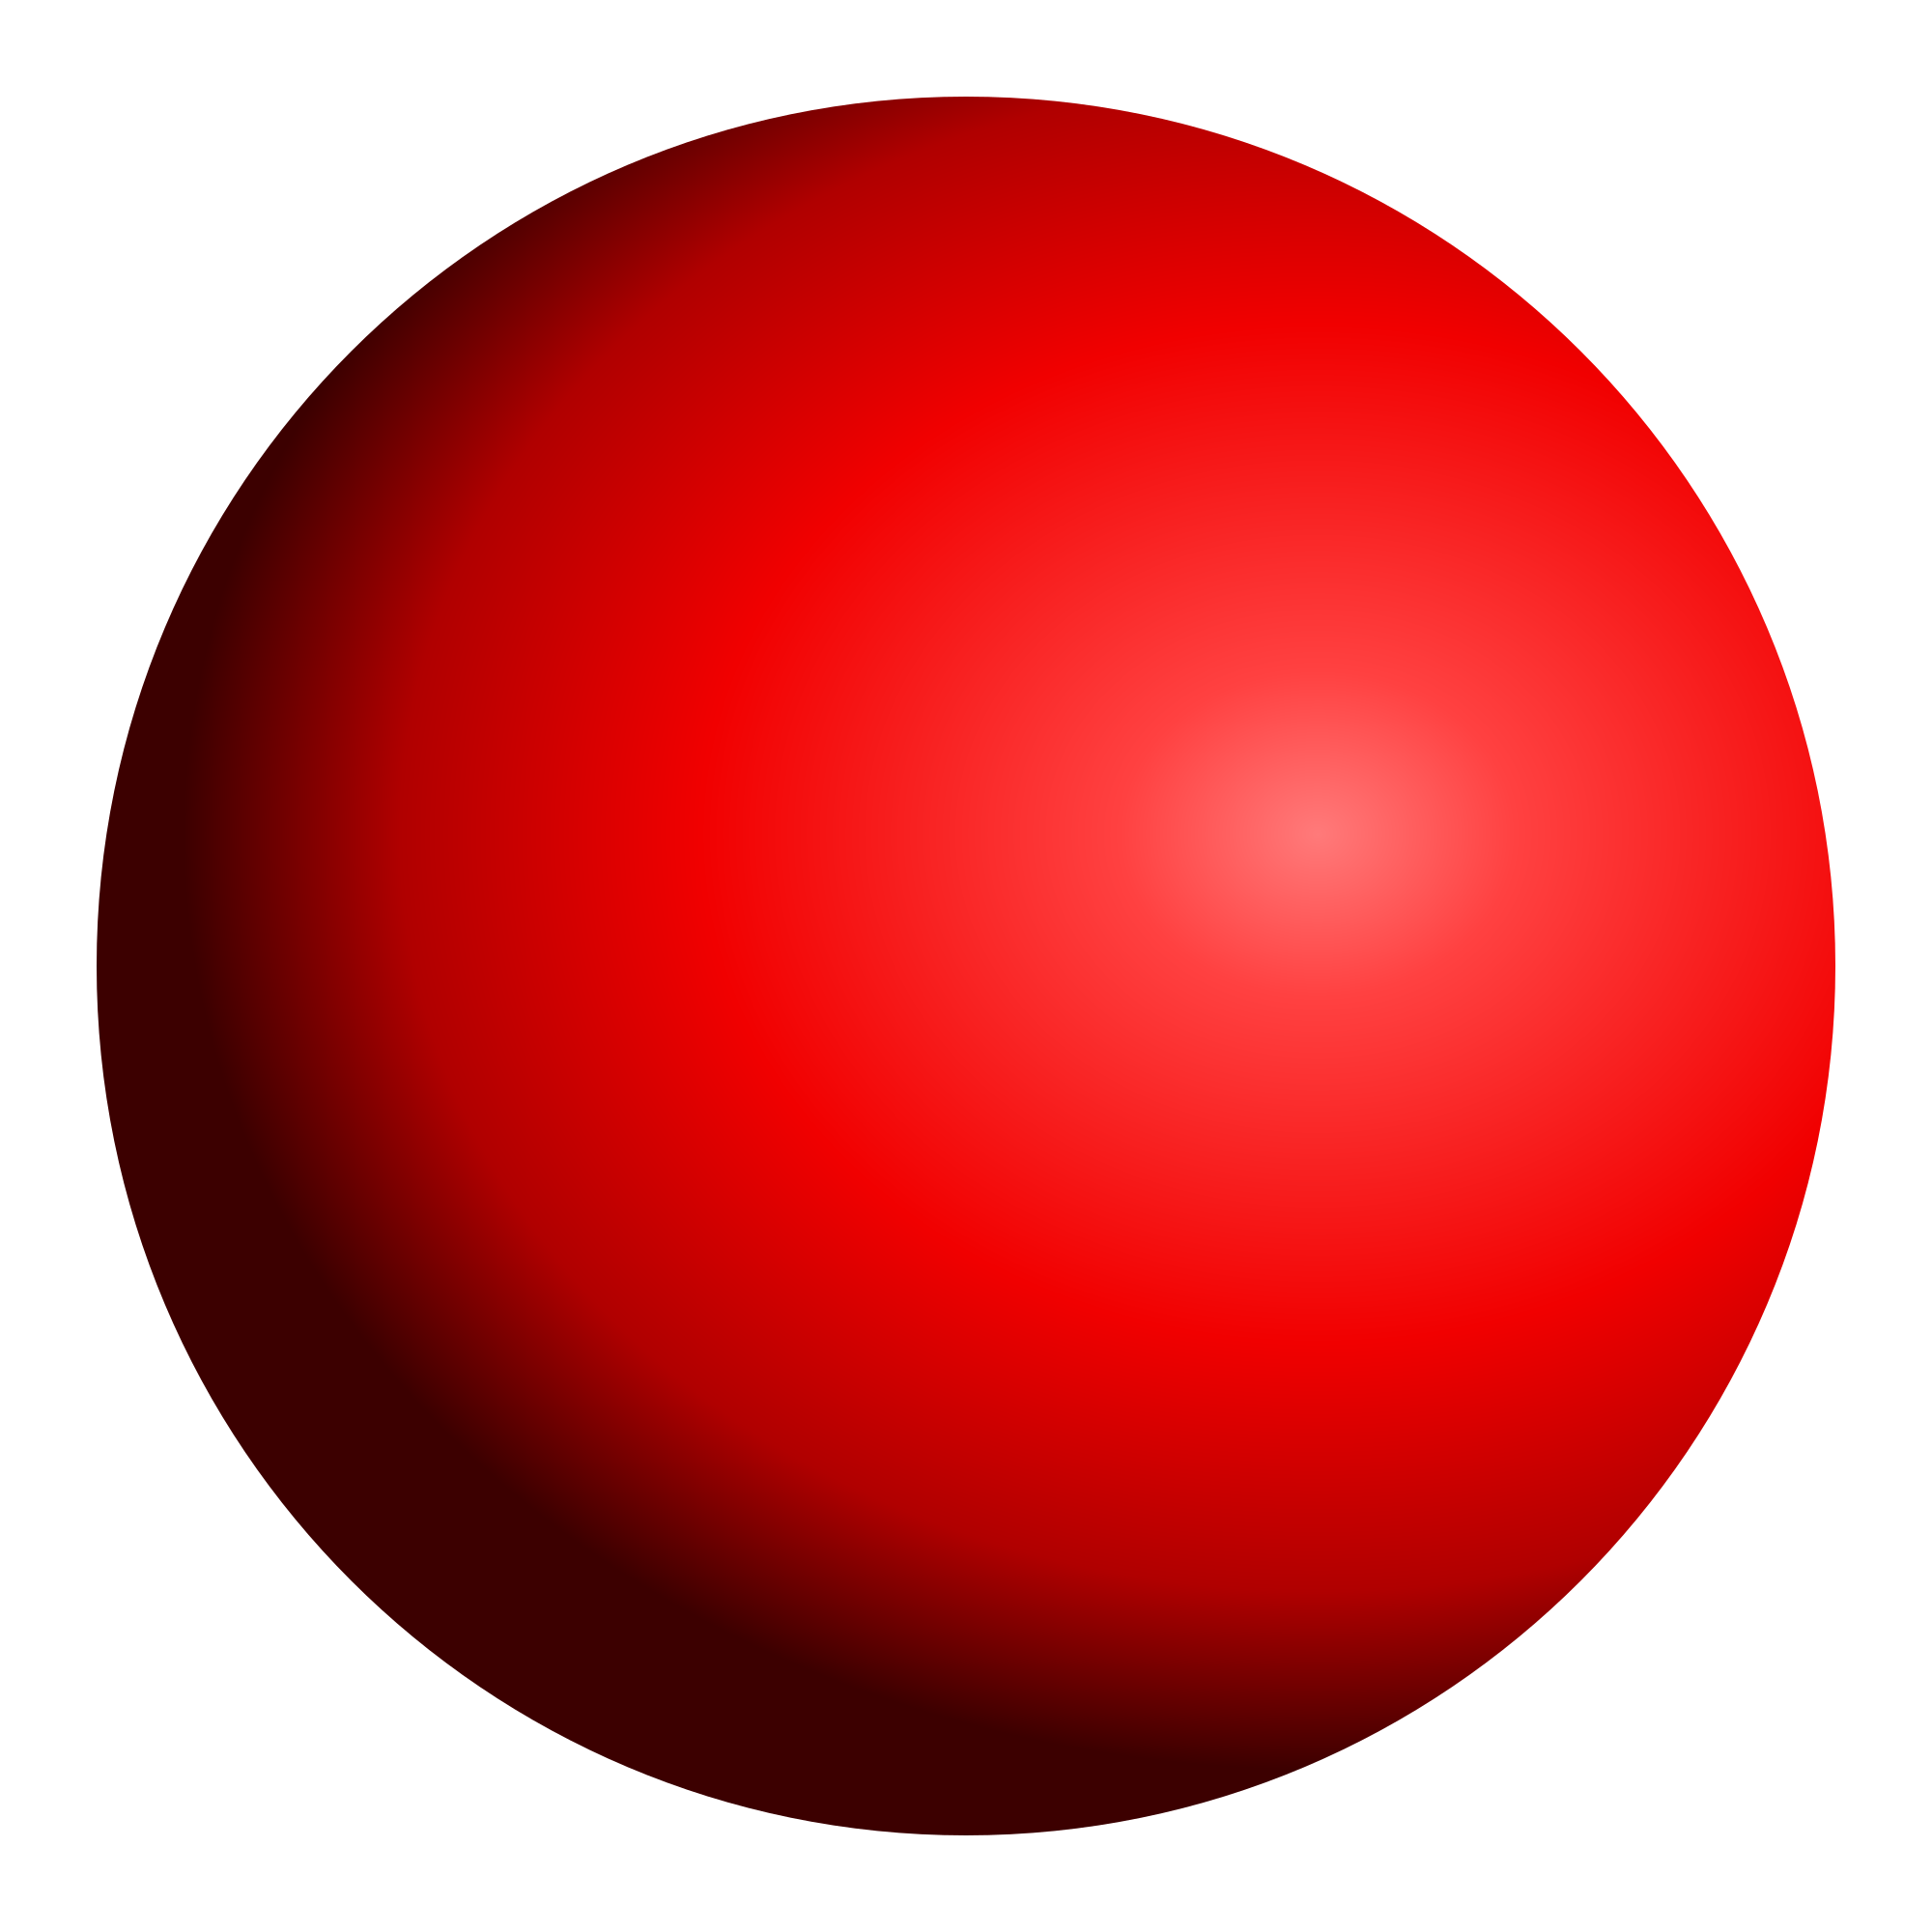 Red sphere png. File shaded lightsource top